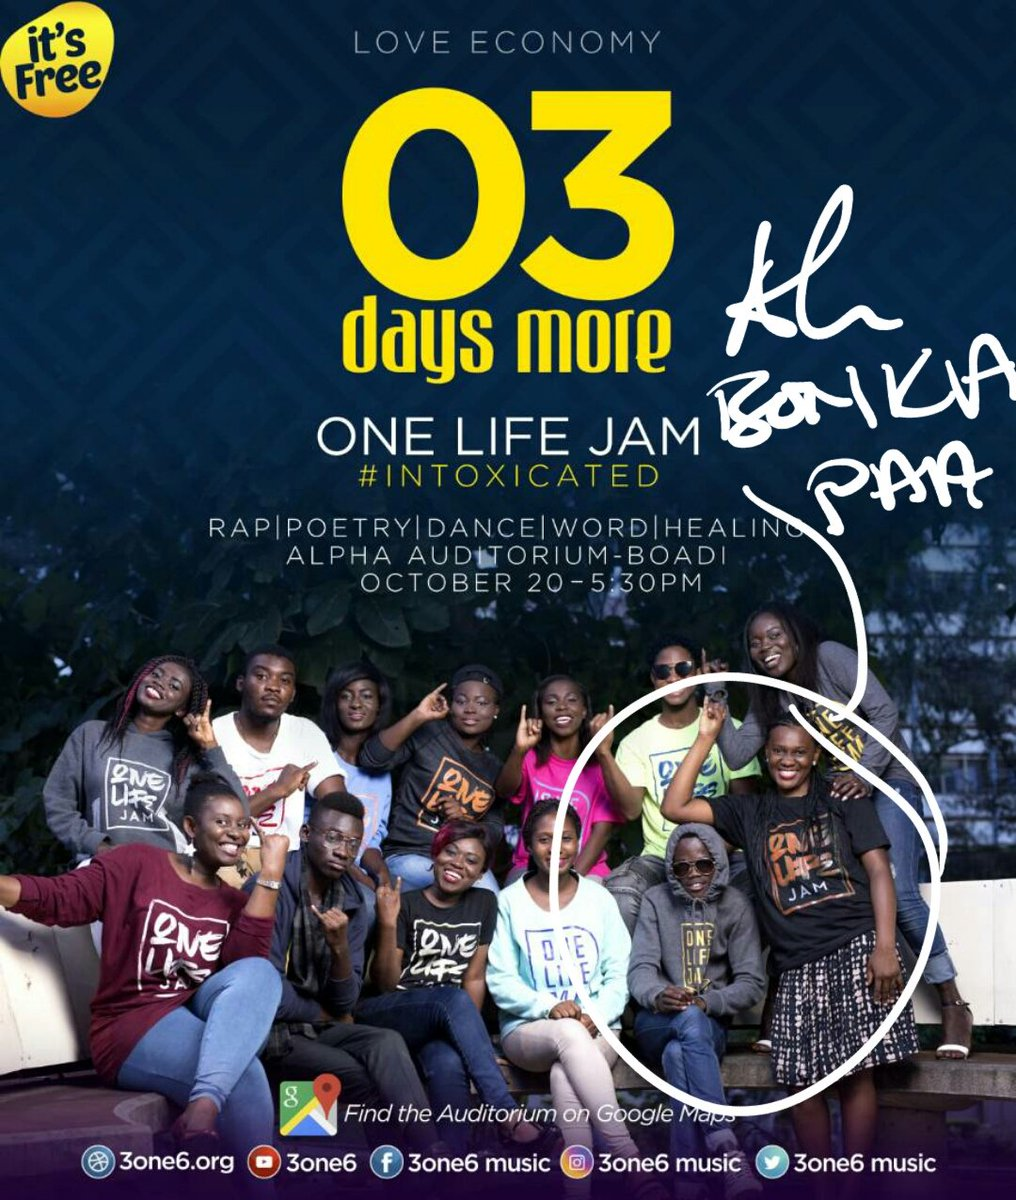 The #Onelifejam #Story PT2 ..she looked at a dp and saw a poster of the event. She wondered who had invited her since she didn&#39;t have... <br>http://pic.twitter.com/XXzr5H8z0N